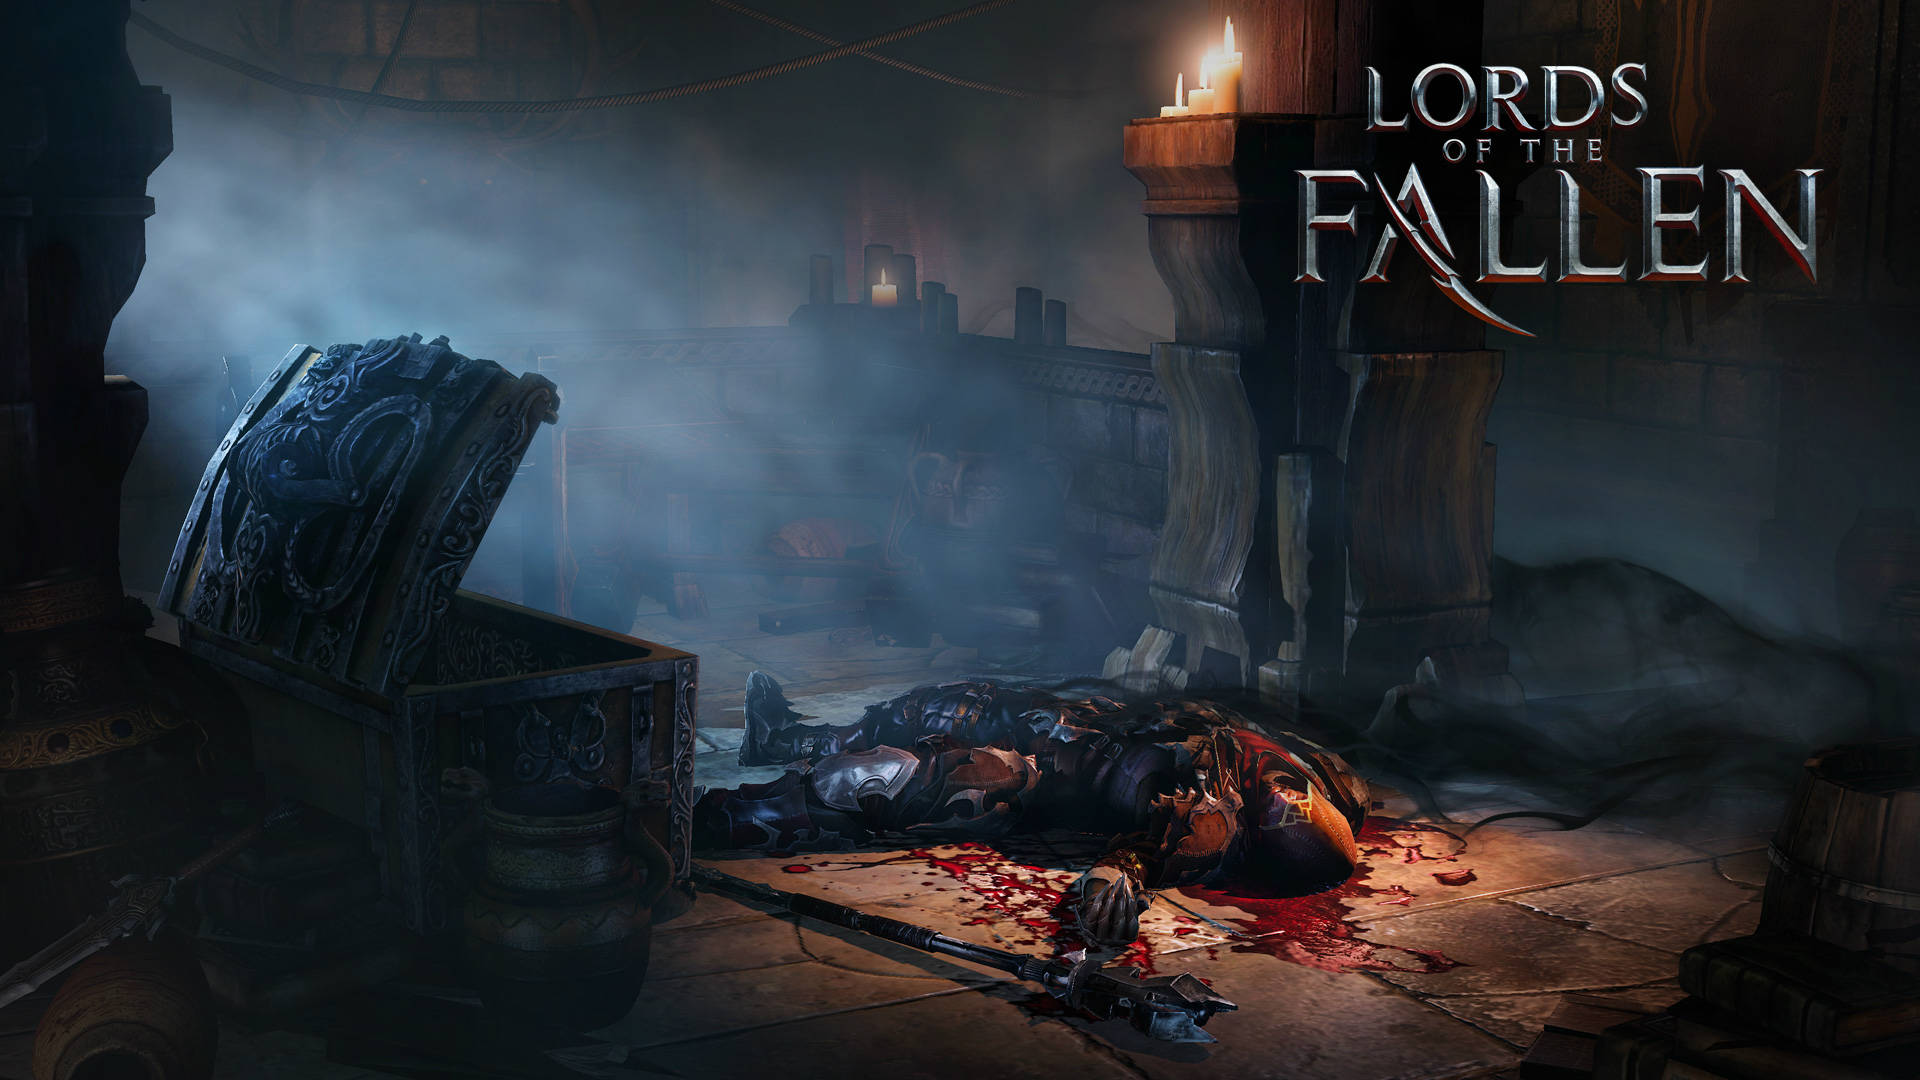 lords-of-the-fallen-2-2